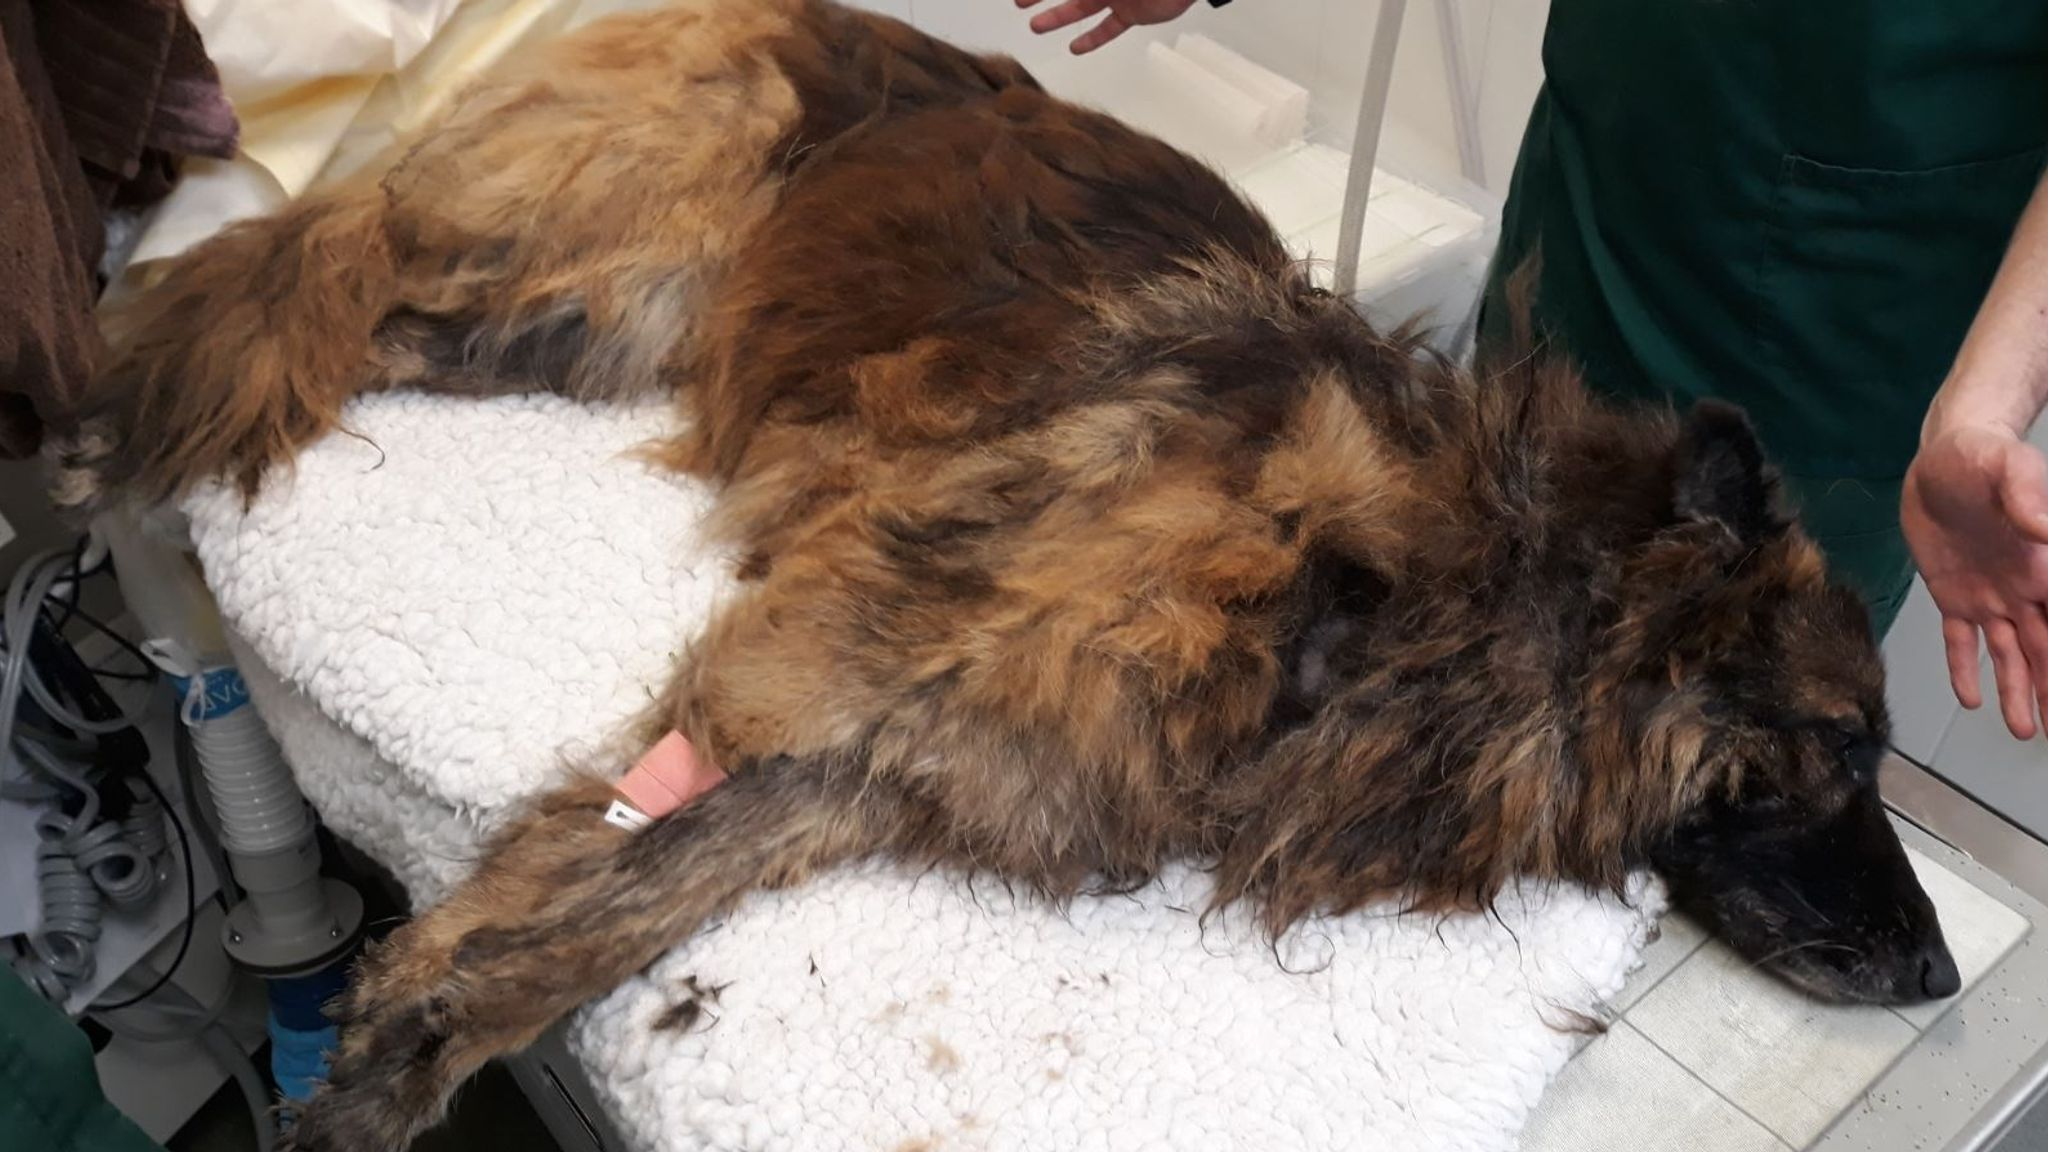 Drowning dog tied to heavy rock rescued from river - man and woman arrested